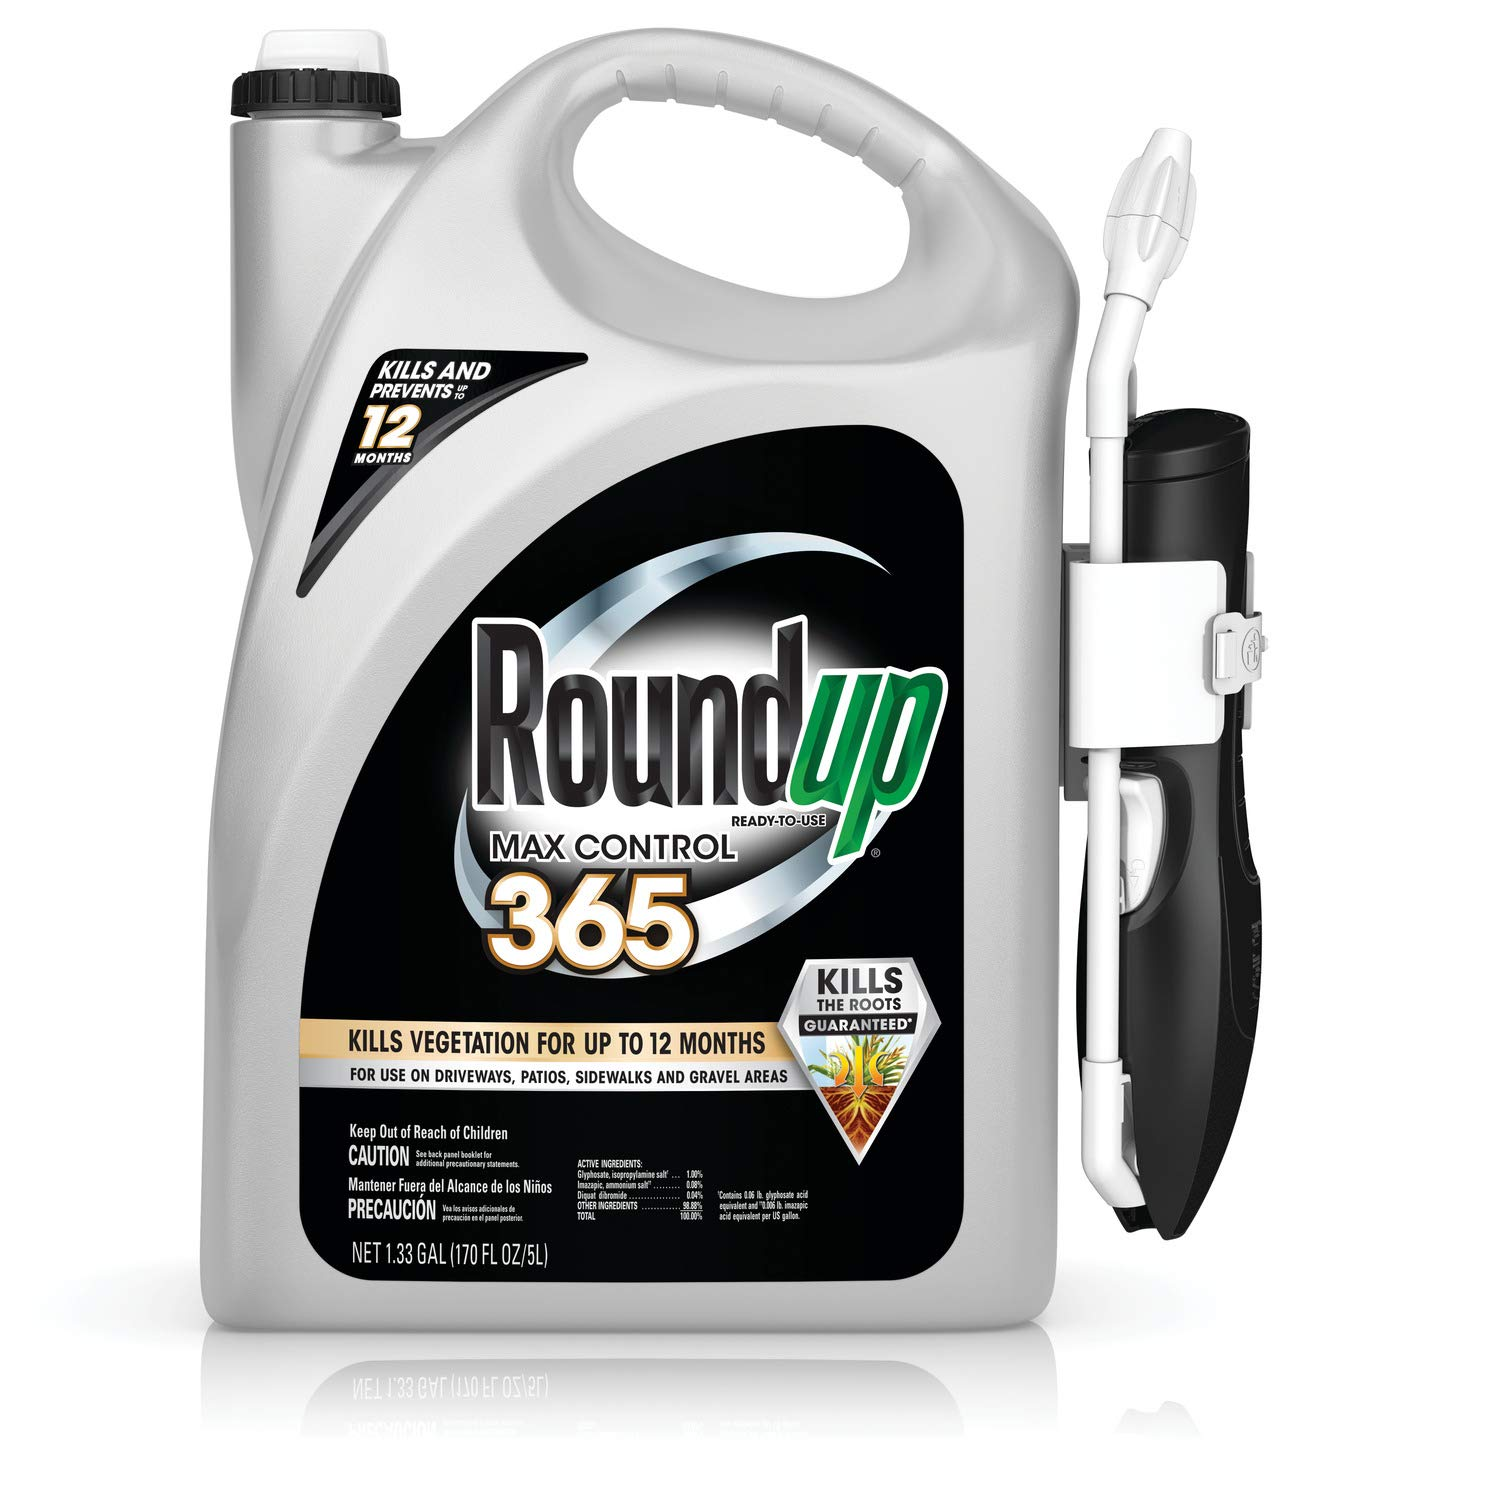 Roundup Ready-To-Use Max Control 365 with Comfort Wand, 1.33 gal.